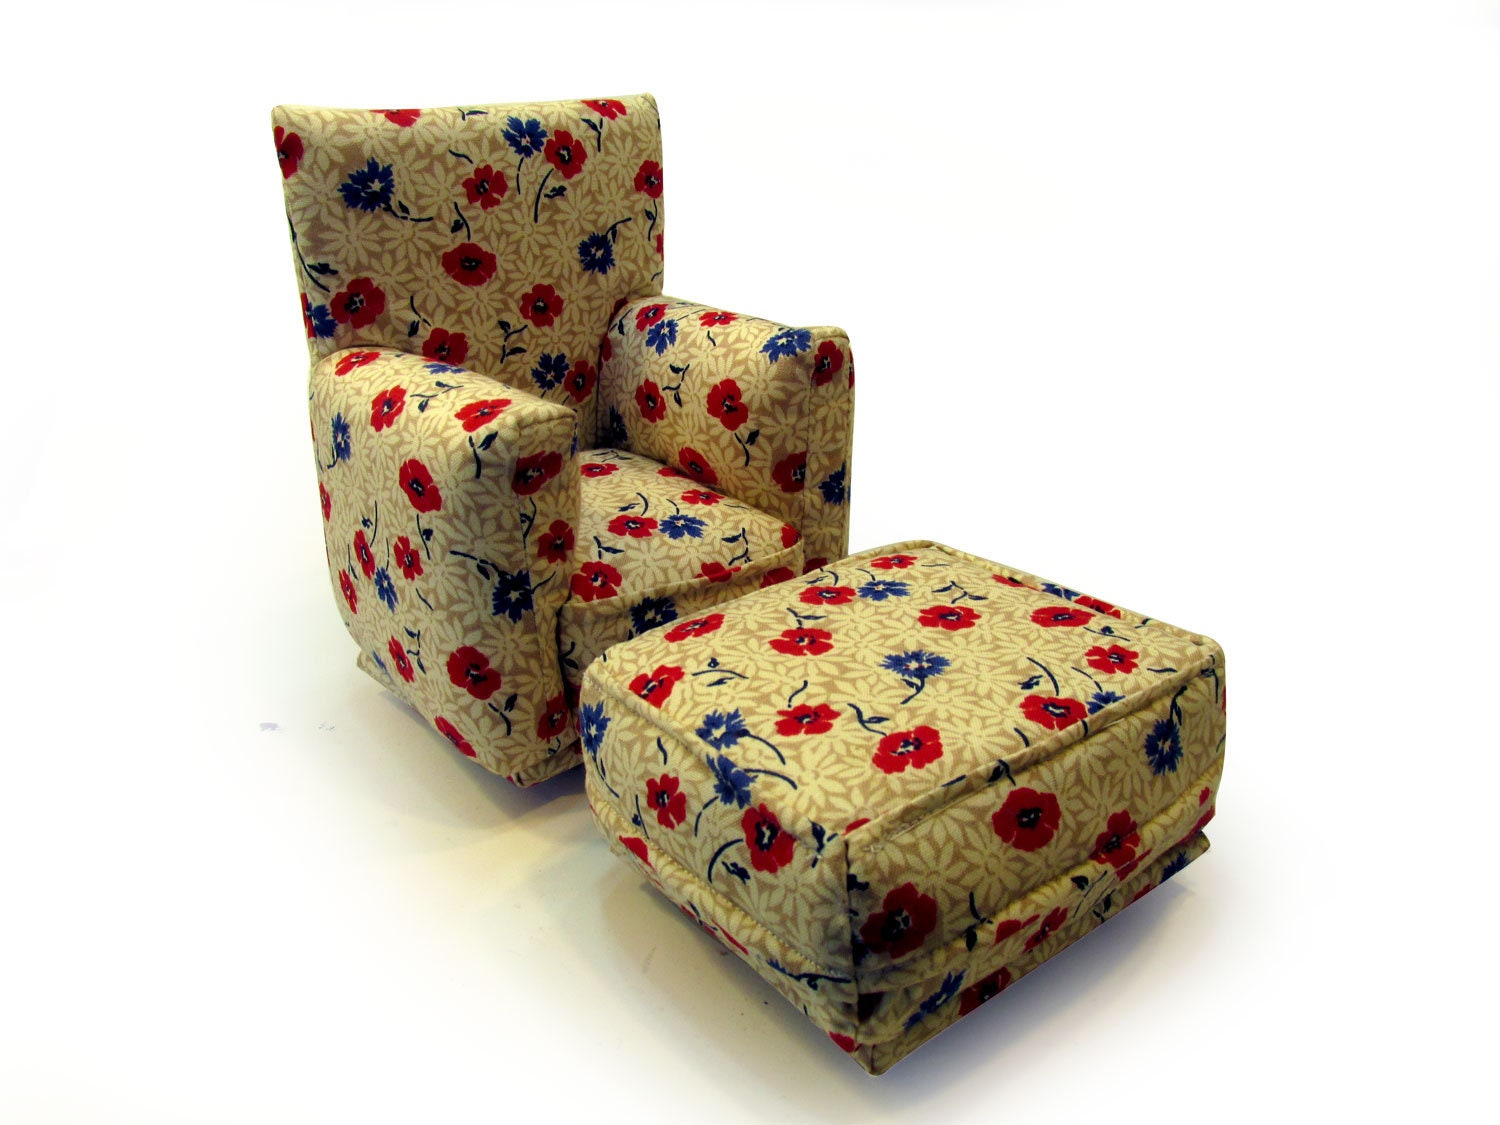 Barbie Doll Living Room Chair Ottoman Red Blue White And Beige Flower Print 1 6 Scale Works With Any Blythe And 11